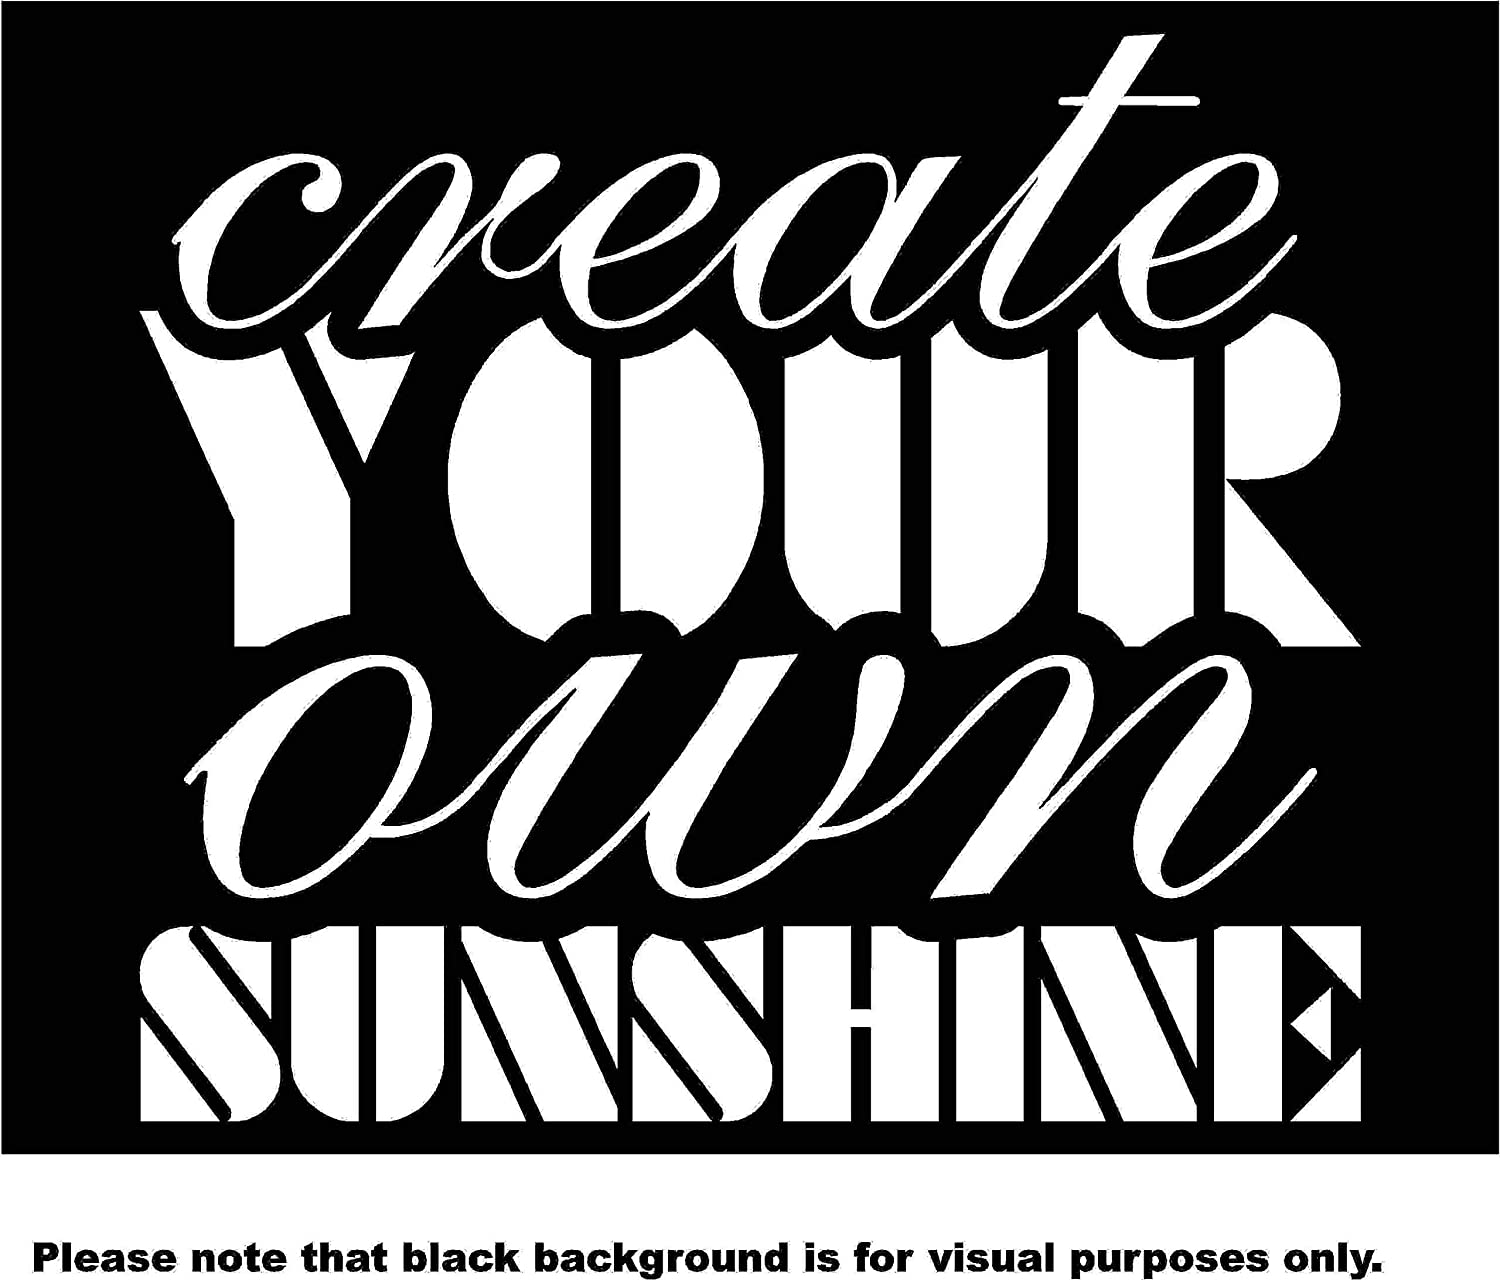 Create your own Sunshine Quote Car Window Tumblers Wall Decal Sticker Vinyl Laptops Cellphones Phones Tablets Ipads Helmets Motorcycles Computer Towers V and T Gifts